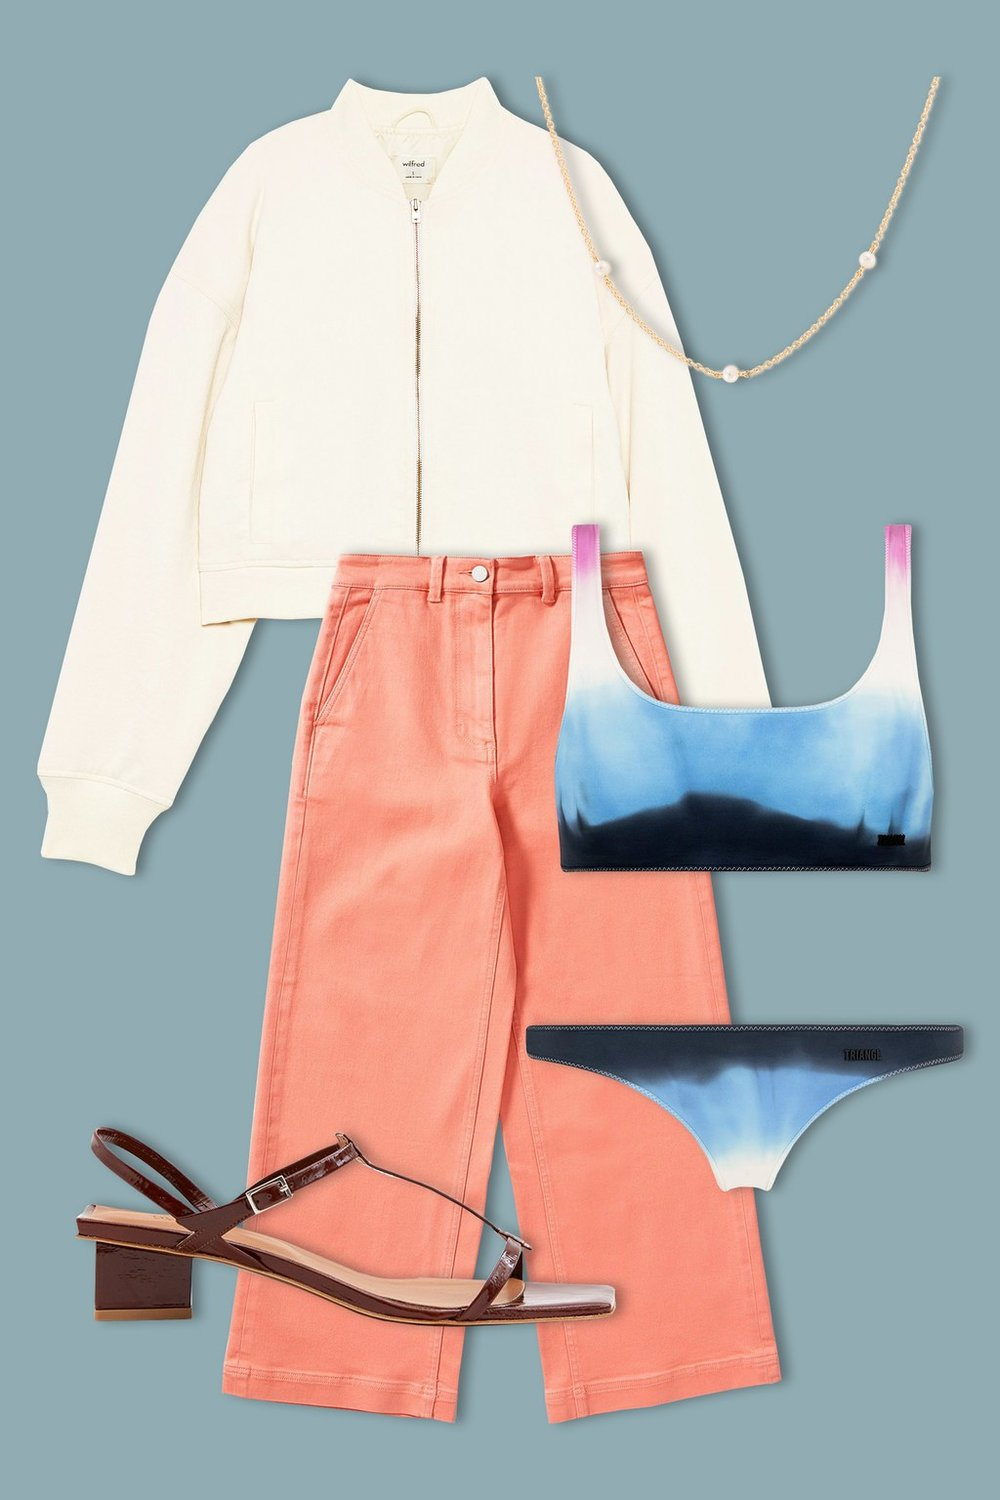 Balance out the crop of a tank-style bikini top with a boxy bomber jacket and a high-waisted pant. Keep accessories minimal—strappy sandals with a subtle heel and a barely-there chain necklace will do the trick.  Triangl Malibu Blues Set, $89,  Triangl ; Wilfred Clovis Jacket, $178,  Aritzia ; Everlane The Wide Leg Crop Pant, $68,  Everlane ; By Far Shoes Krista Patent Leather Sandal In Brown, $370,  Need Supply ; Mejuri Trio Pearl Necklace, $225,  Mejuri